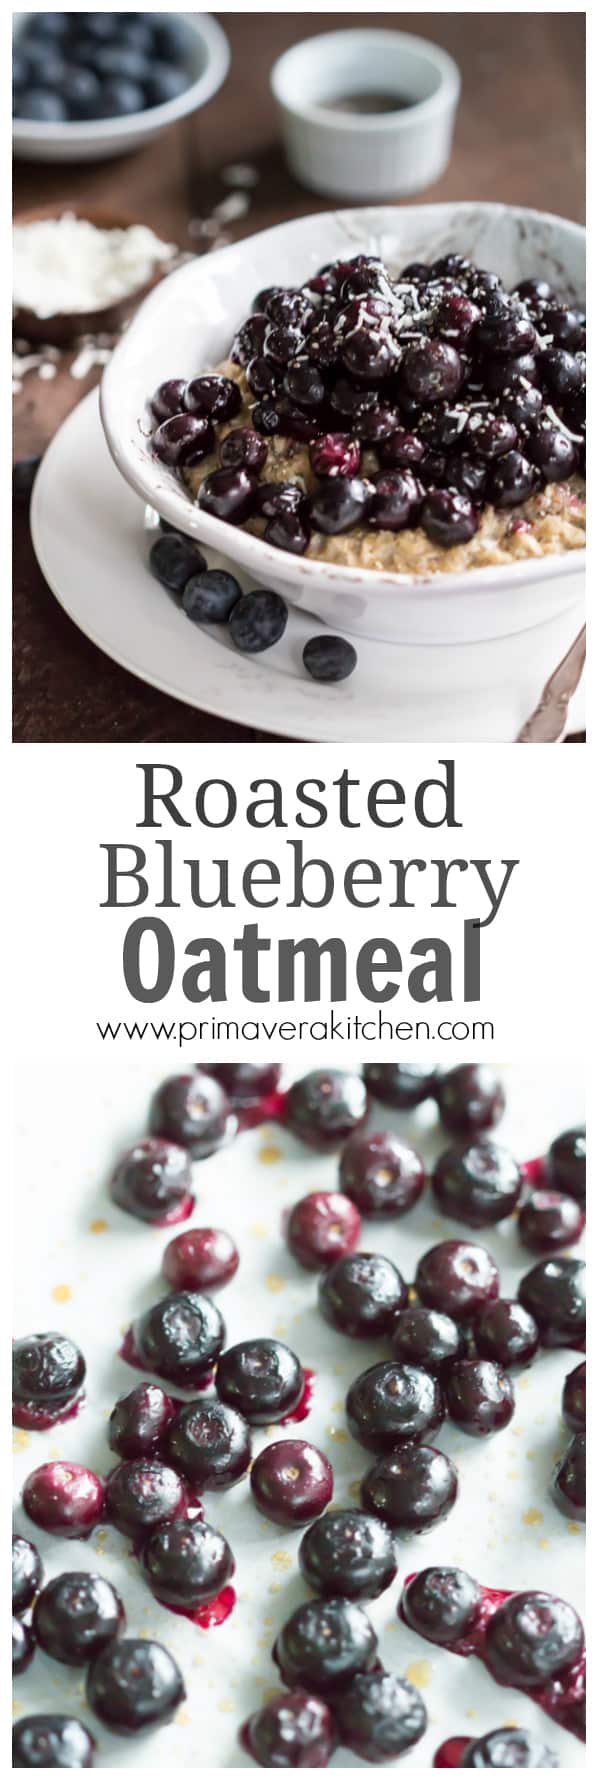 Roasted Blueberry Oatmeal - This Roasted Blueberry Oatmeal is a healthy and delicious way to start your day. It is made with coconut milk and the berries are roasted with maple syrup.